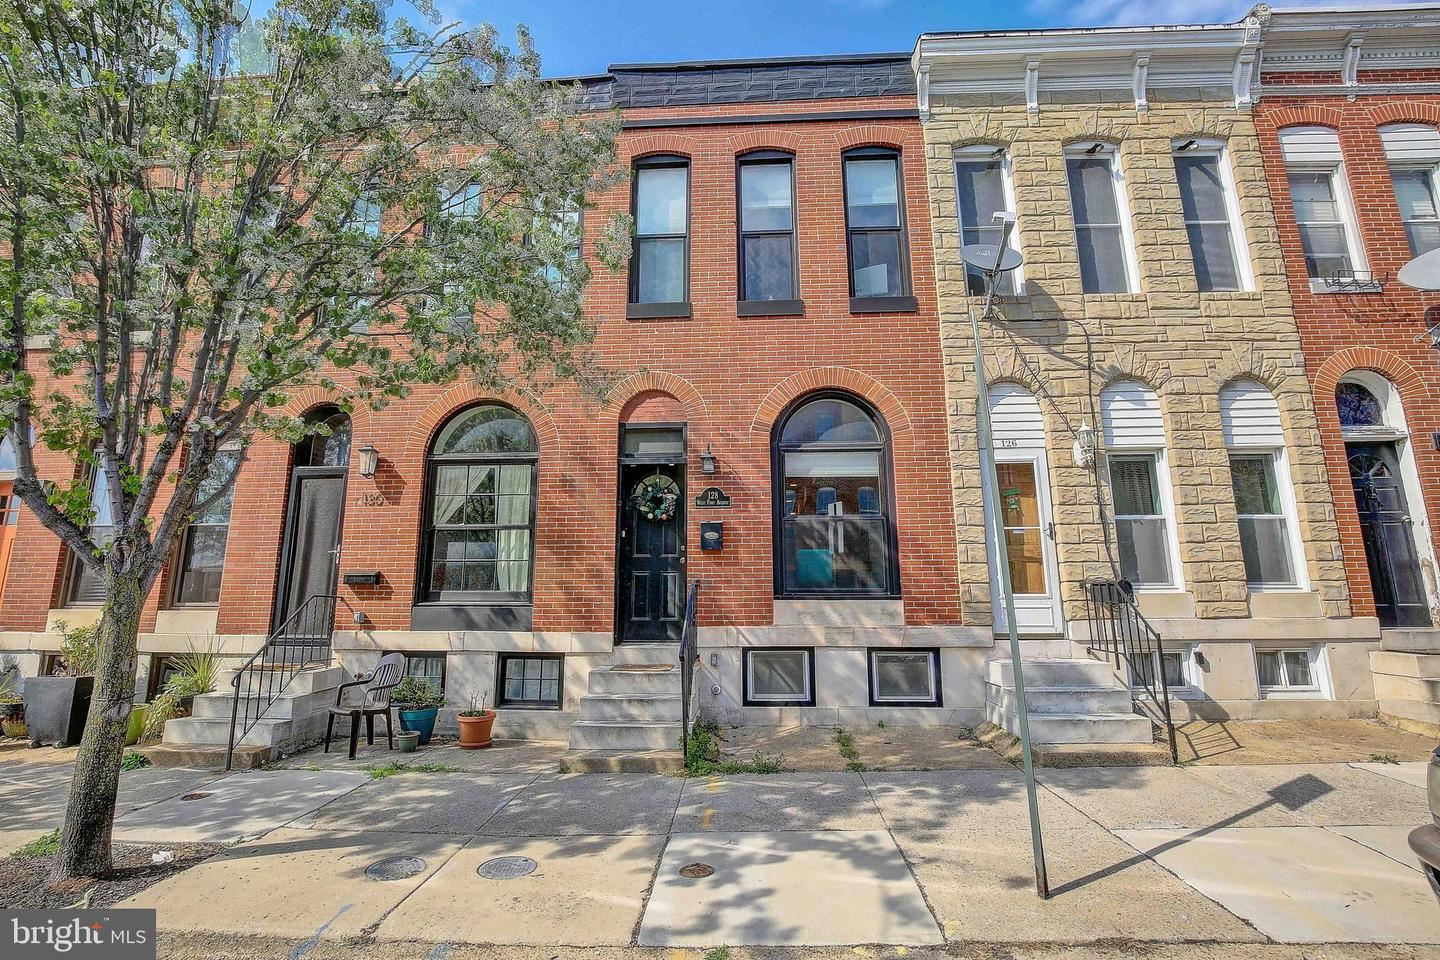 128 W FORT AVE, Baltimore, MD 21230 - MLS#: MDBA545052